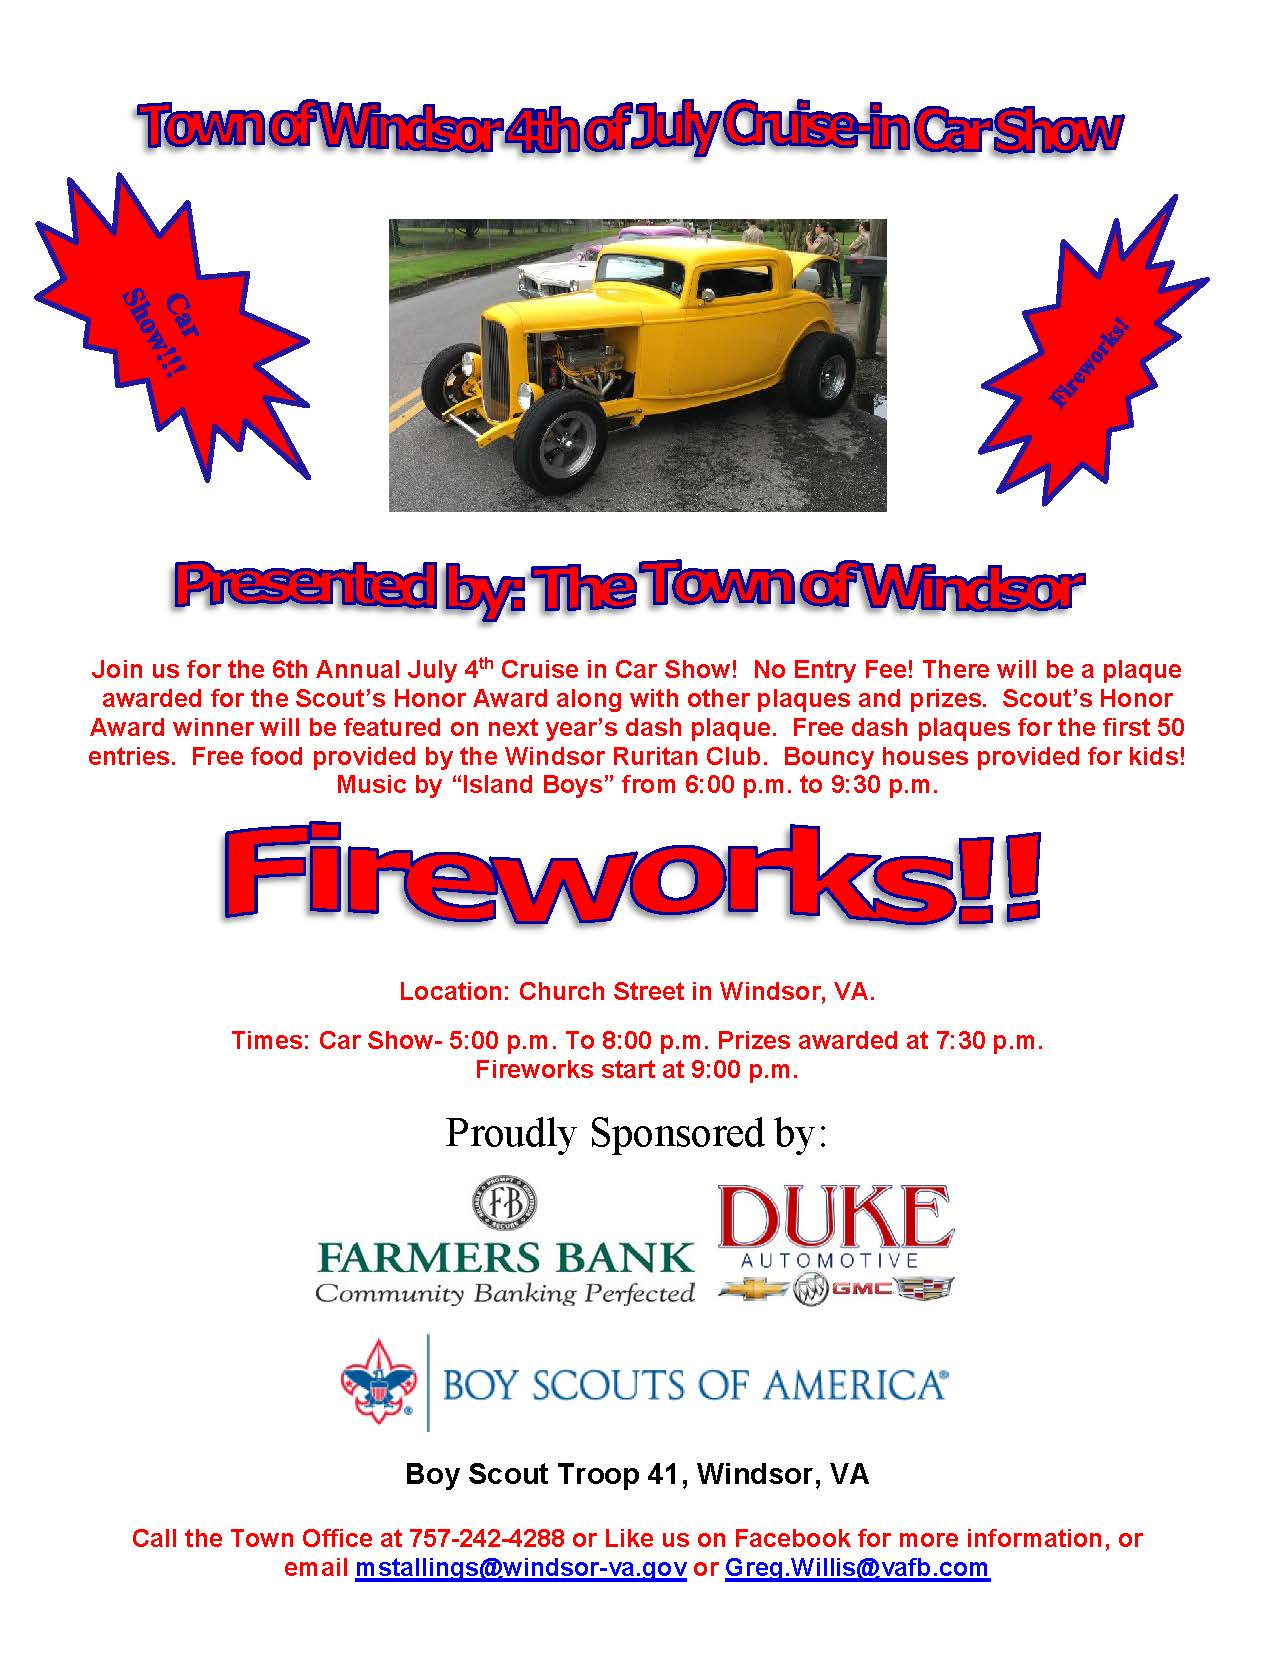 July 4th car show news news official website for the town of you can download the registration form here thecheapjerseys Image collections